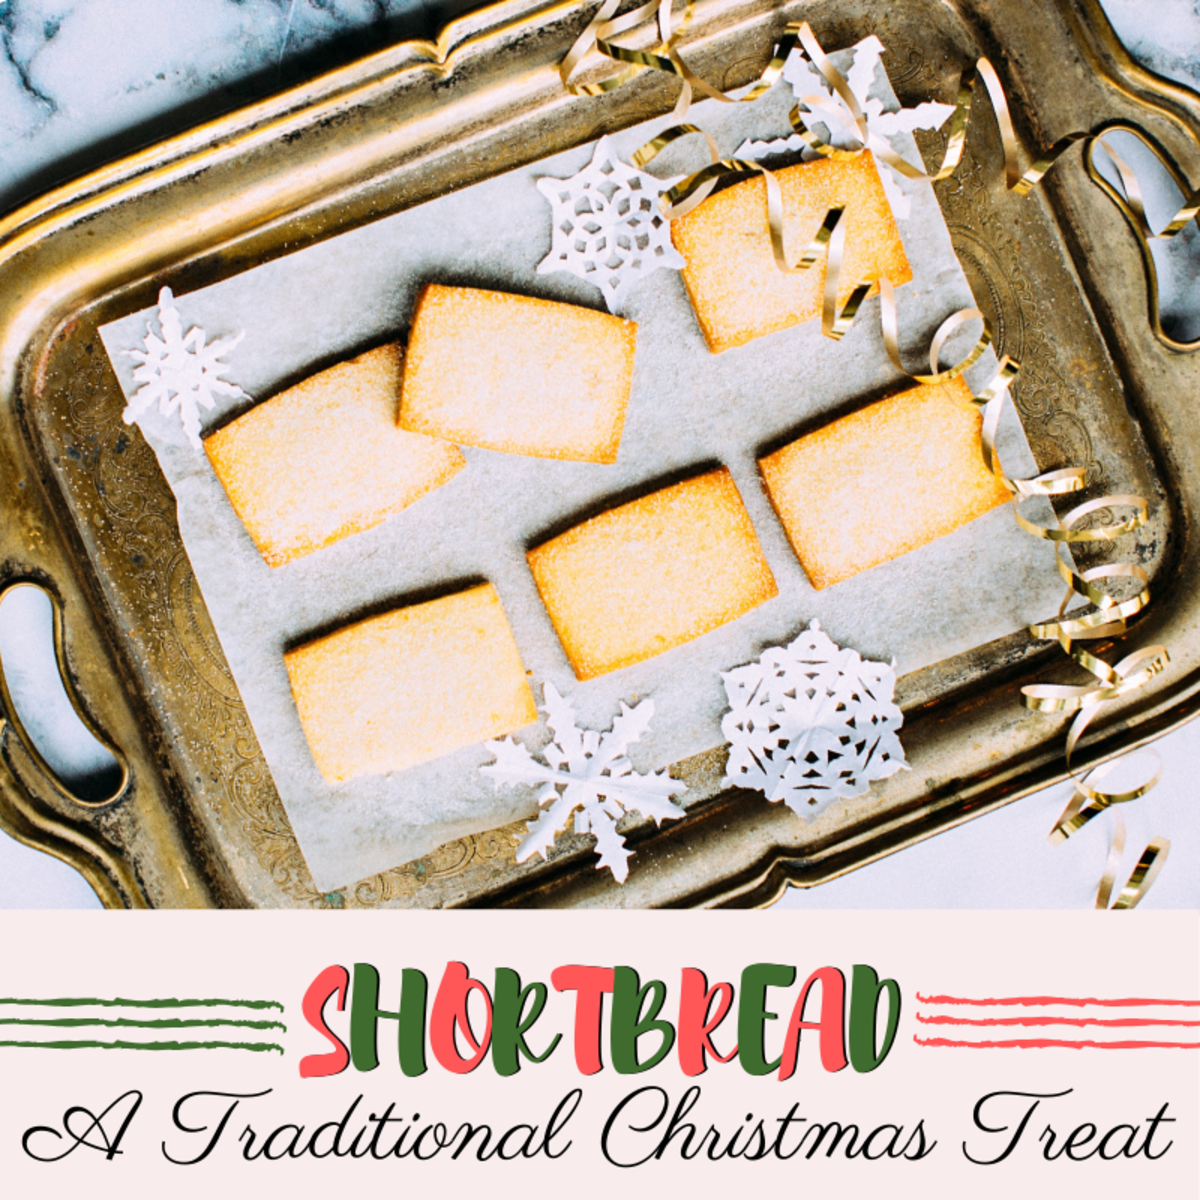 Shortbread Facts and Recipes: A Traditional Christmas Treat